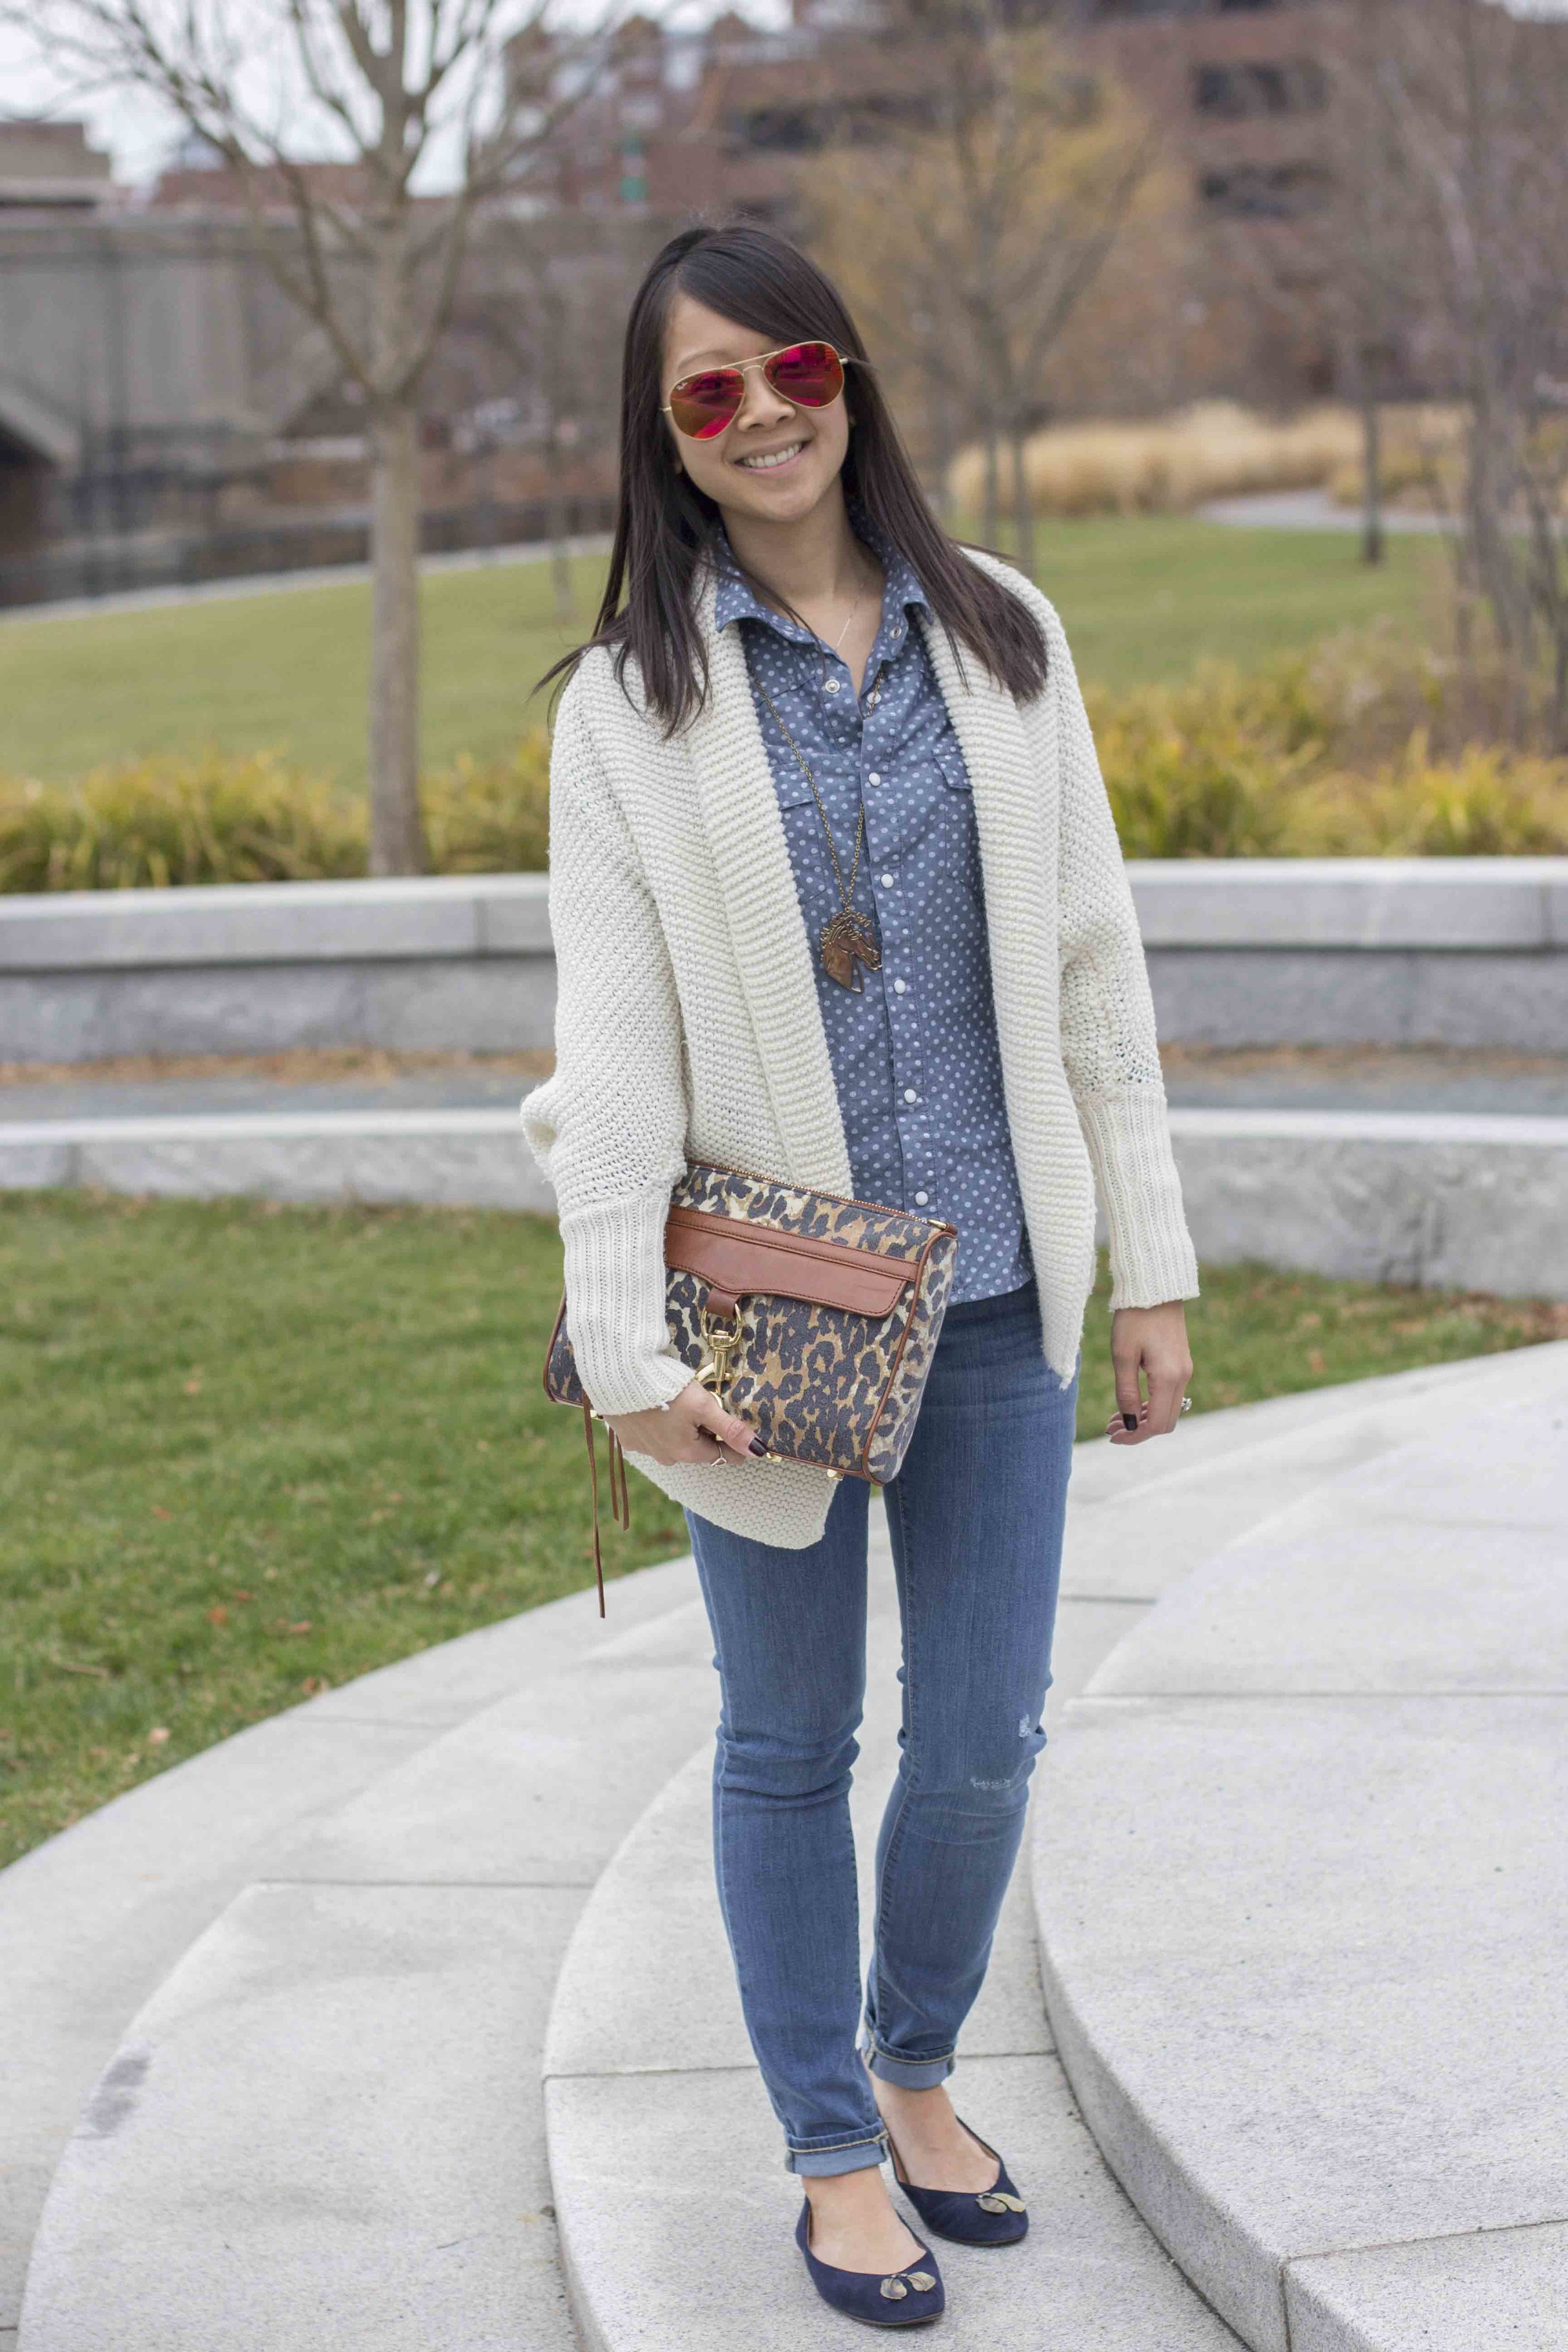 rayban_joes jeans_express_rebecca minkoff_old navy_anthropologie